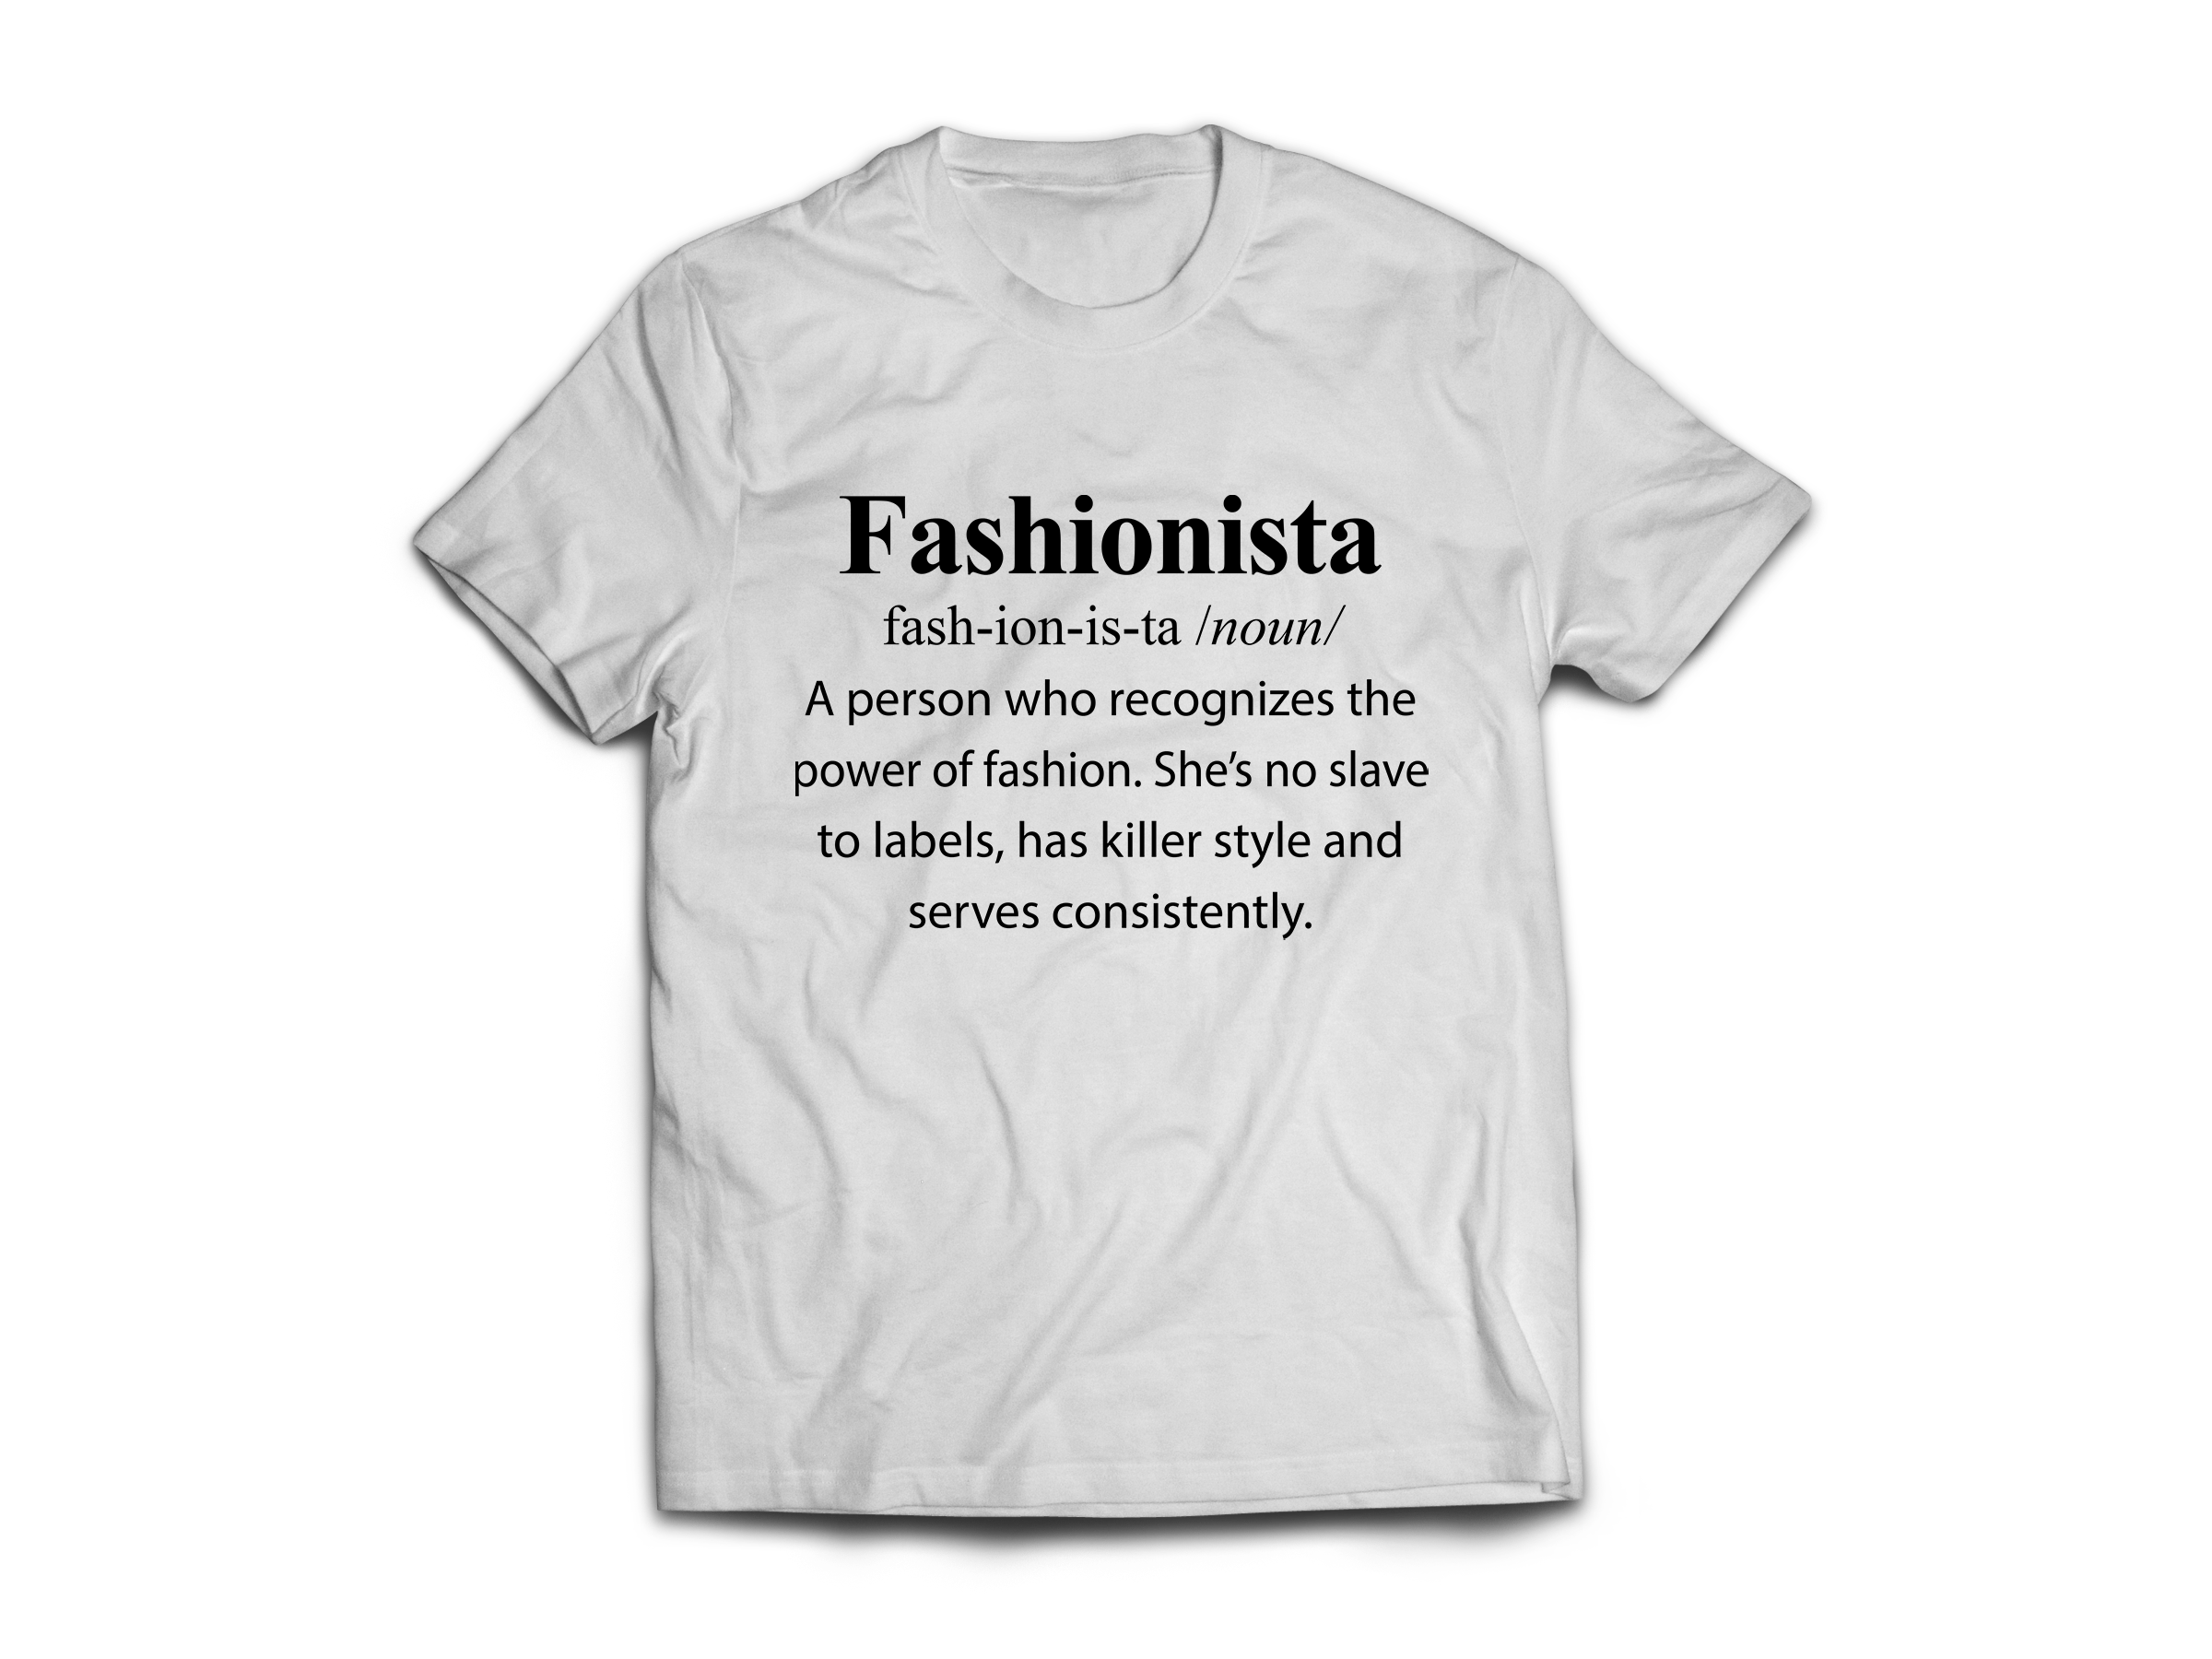 Fashionista women 39 s designer graphic t shirt stylish and for T shirt graphic designer